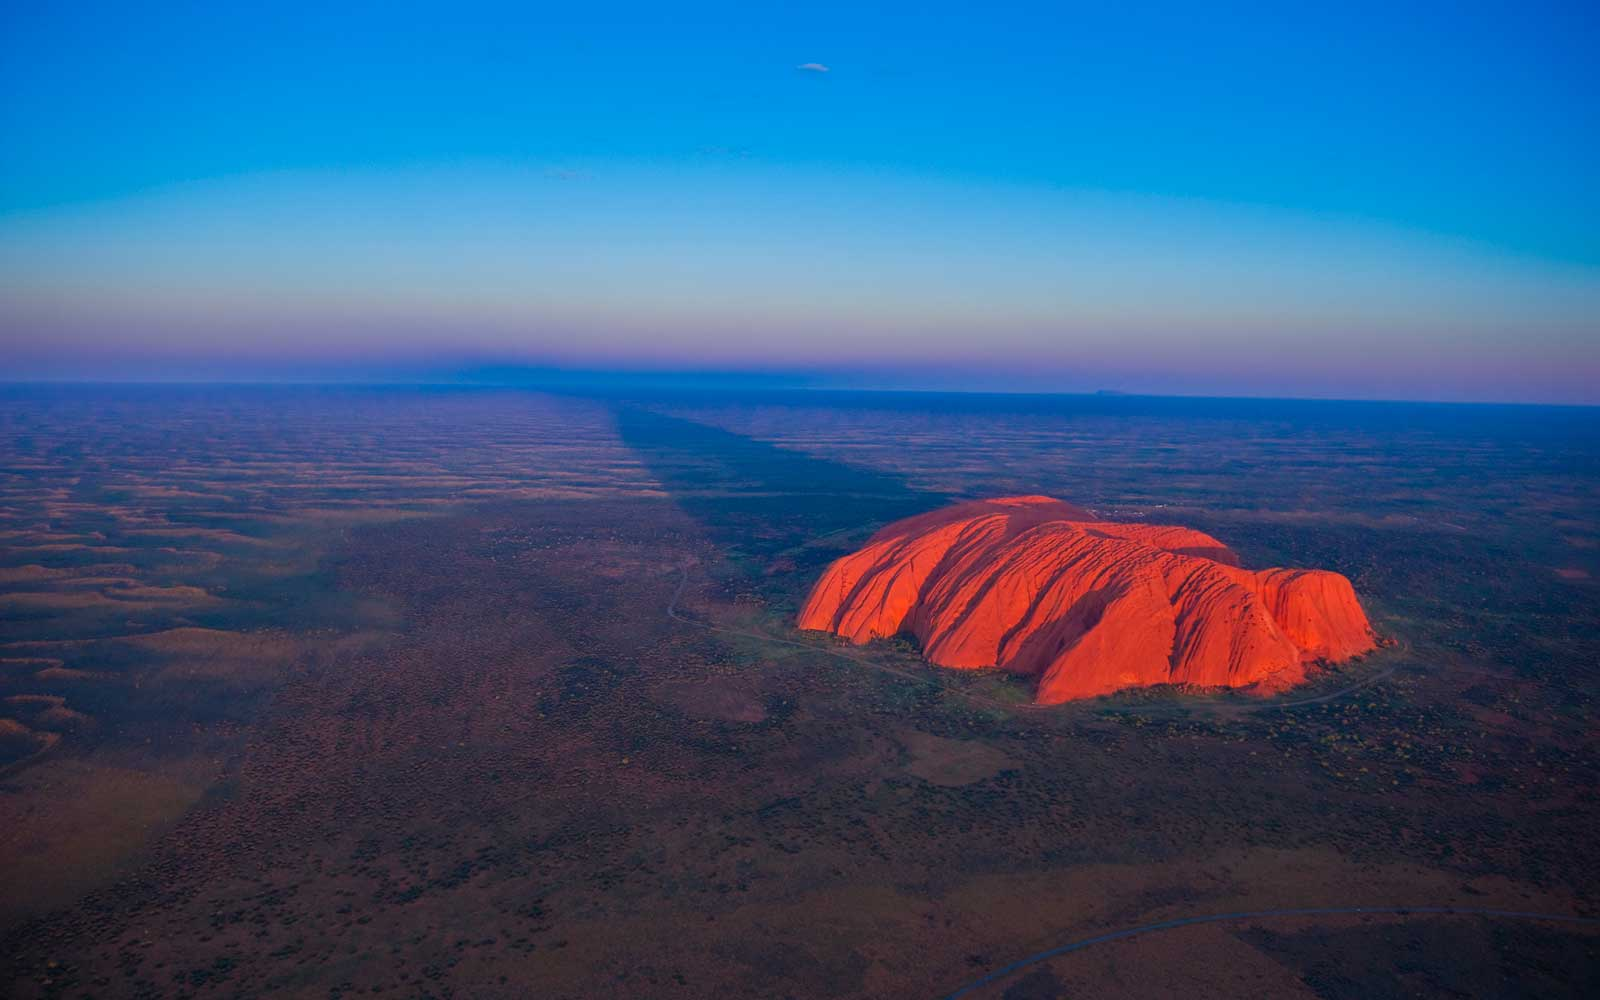 People Are Still Flocking to Climb Uluru Despite Upcoming Ban